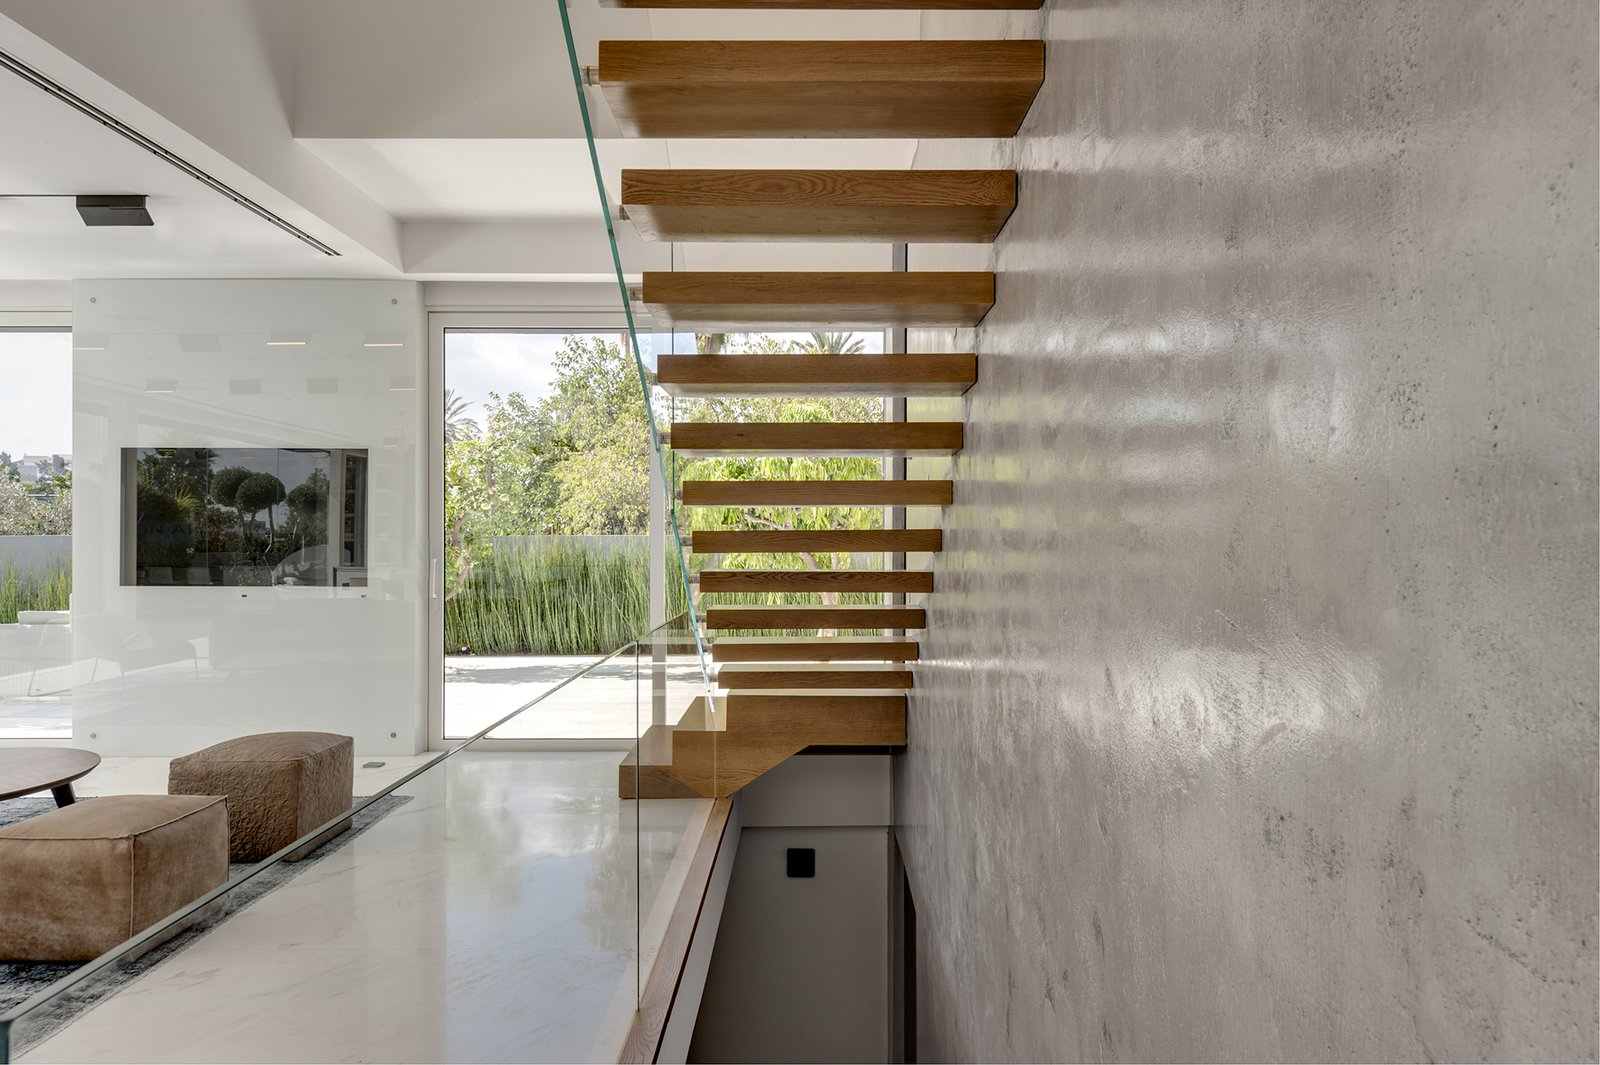 Inside, the home immediately opens up with light and natural views. The cantilevered stairs leading to the first floor offer a dramatic focal point. The stairs, wrapped in natural oak, are anchored to the exposed concrete walls on one side, and bordered by a clear glass railing on the opposite side.  Rishon Le Zion 3 by Sarah Akkoush